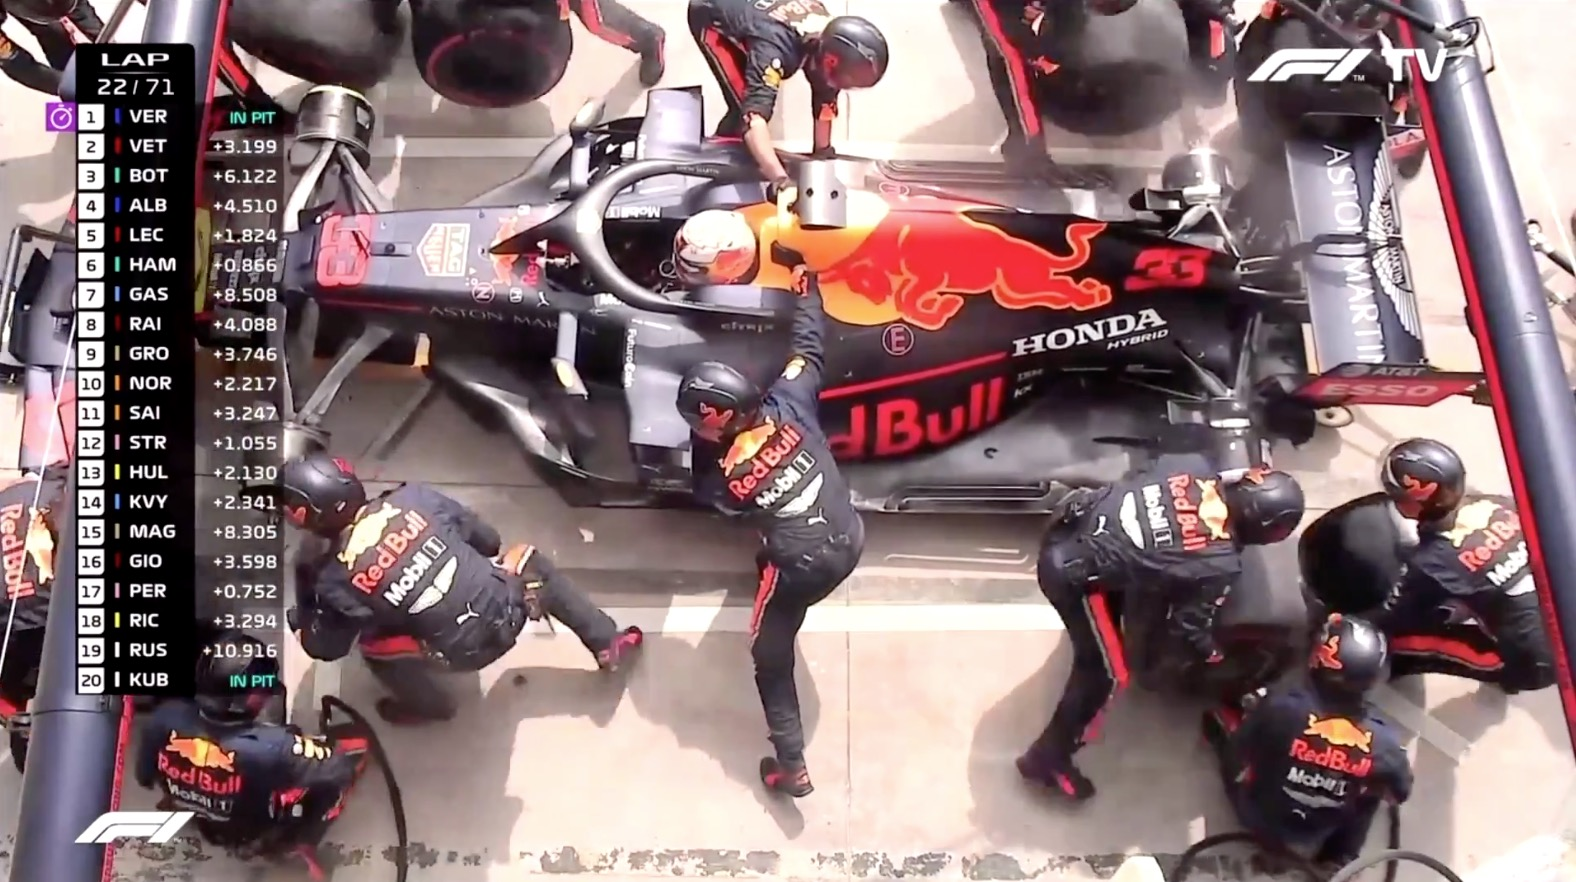 This 1.82-Second, World Record-Setting Pit Stop Hardly Even Looks Real - Digg